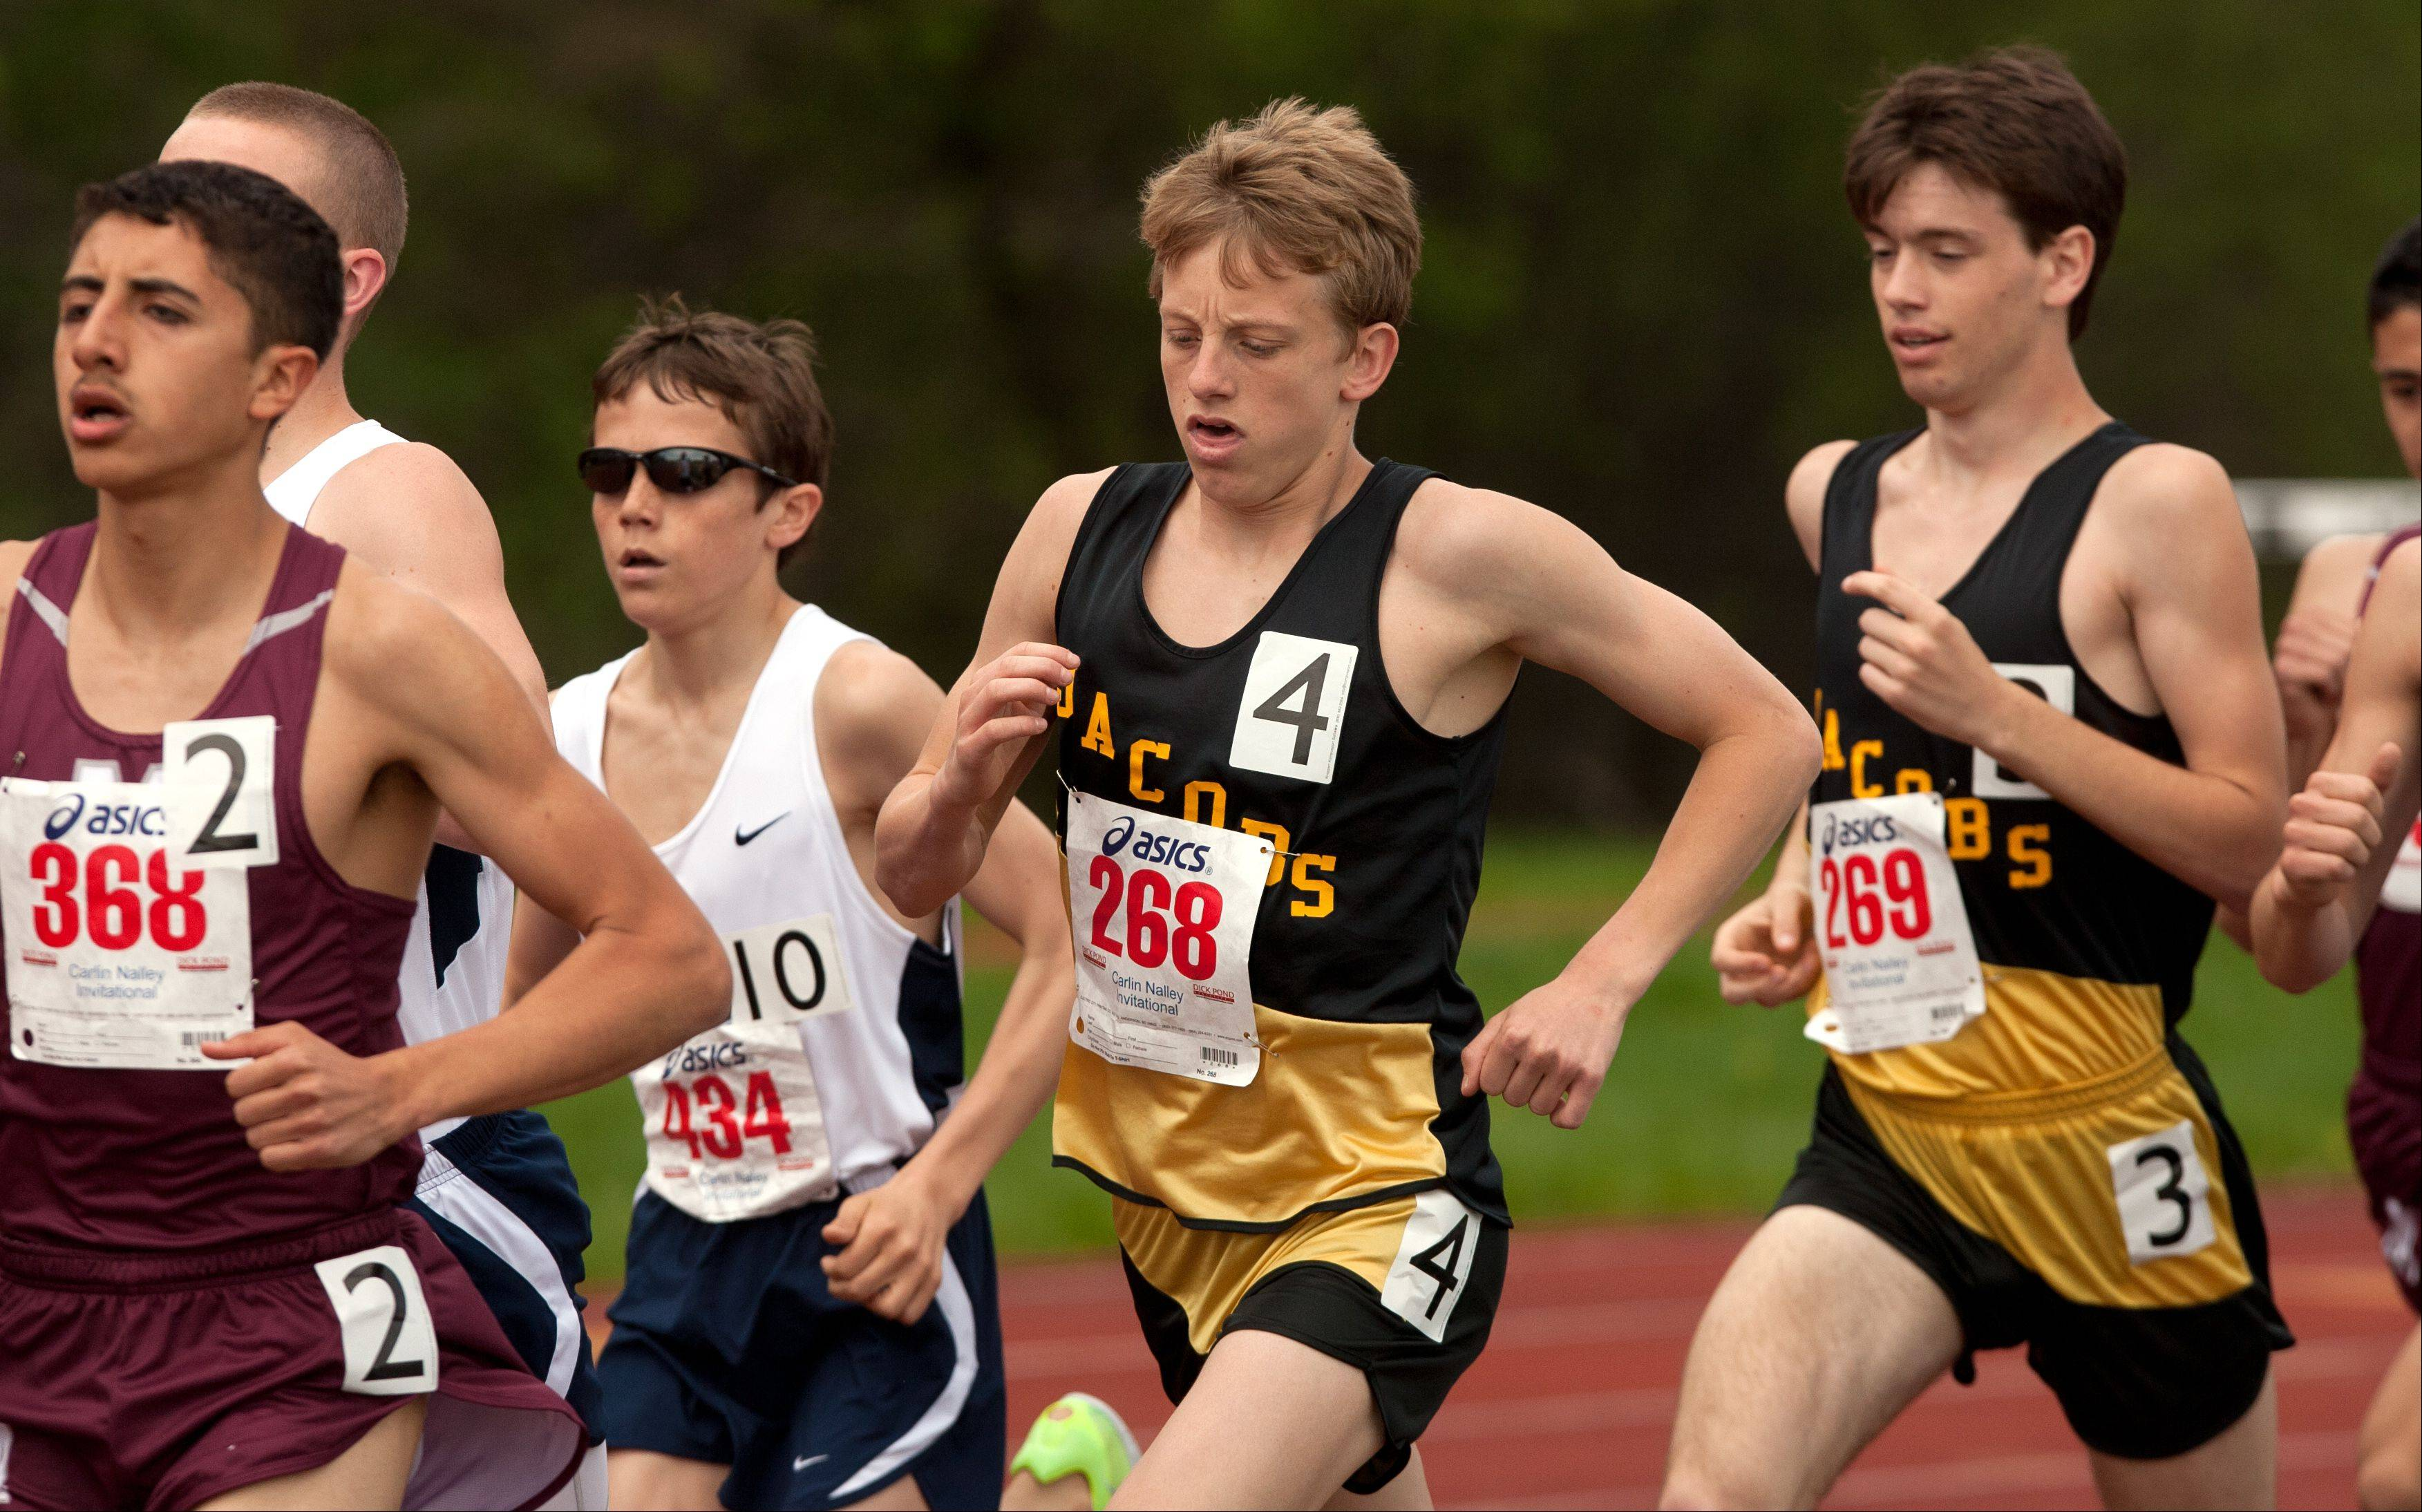 Jacobs' Matt Goldby and Matt Johnson, right, run the 3200 meter run during the 46th annual Carlin Nalley Boys´ Track Invitational at Benedictine University in Lisle.